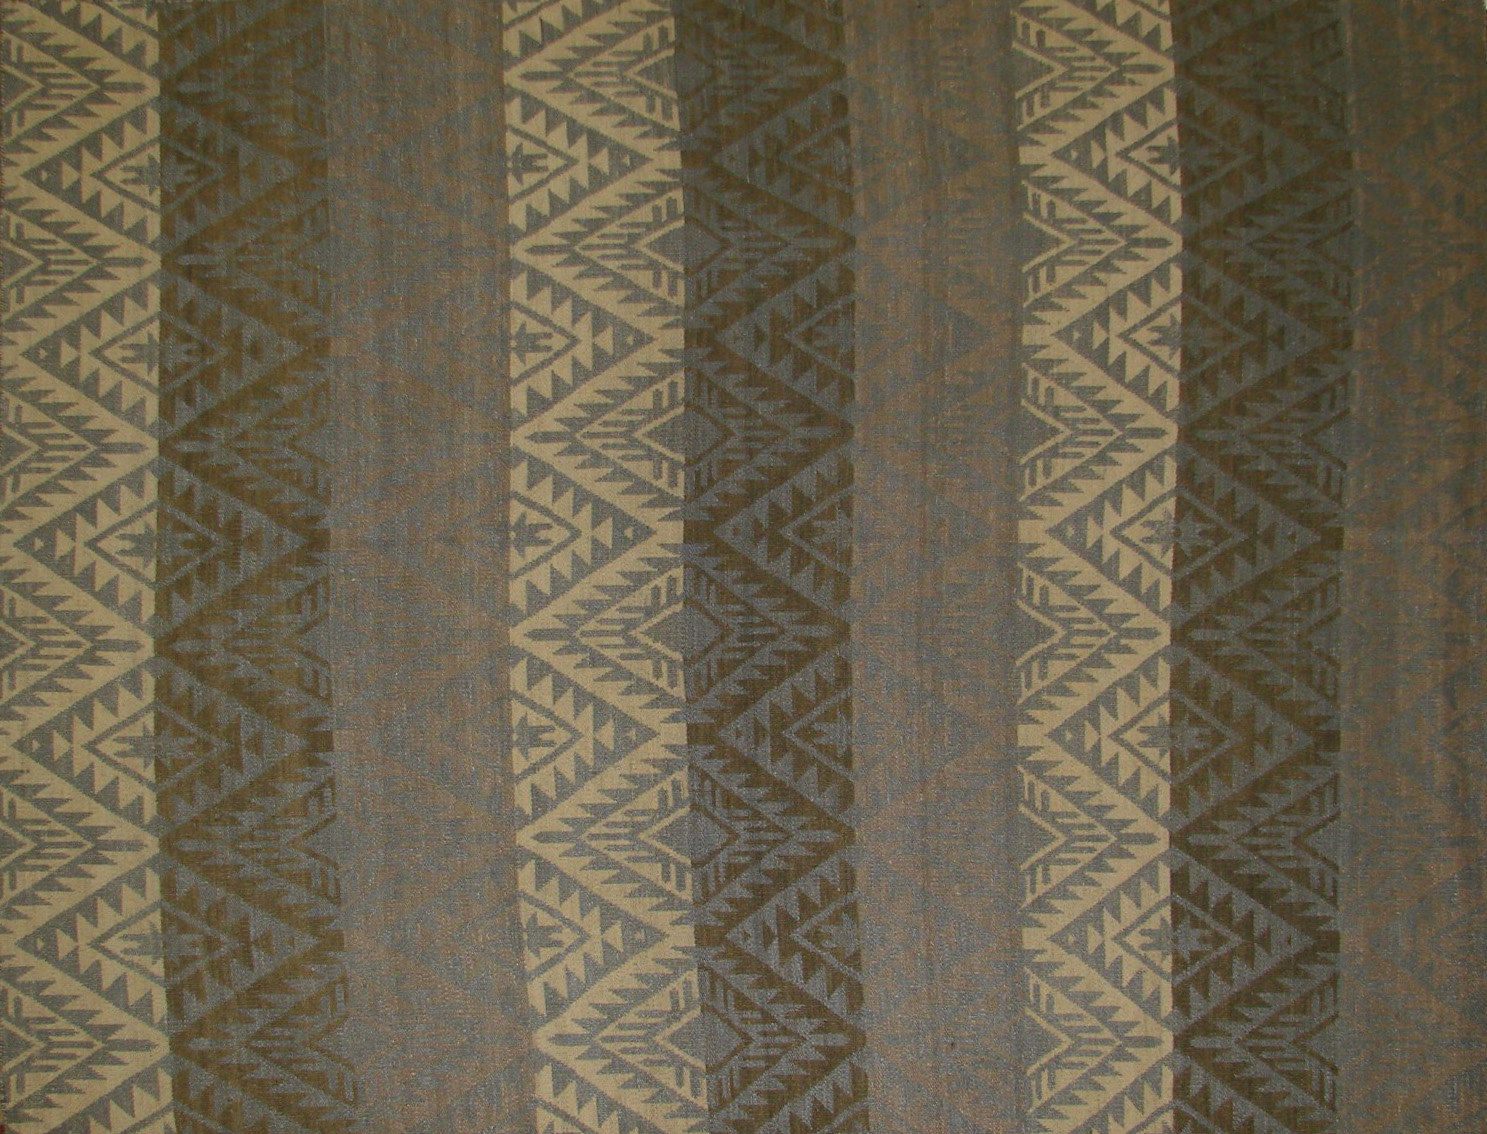 6x9 Flat Weave Hand Knotted Wool Area Rug - MR21038